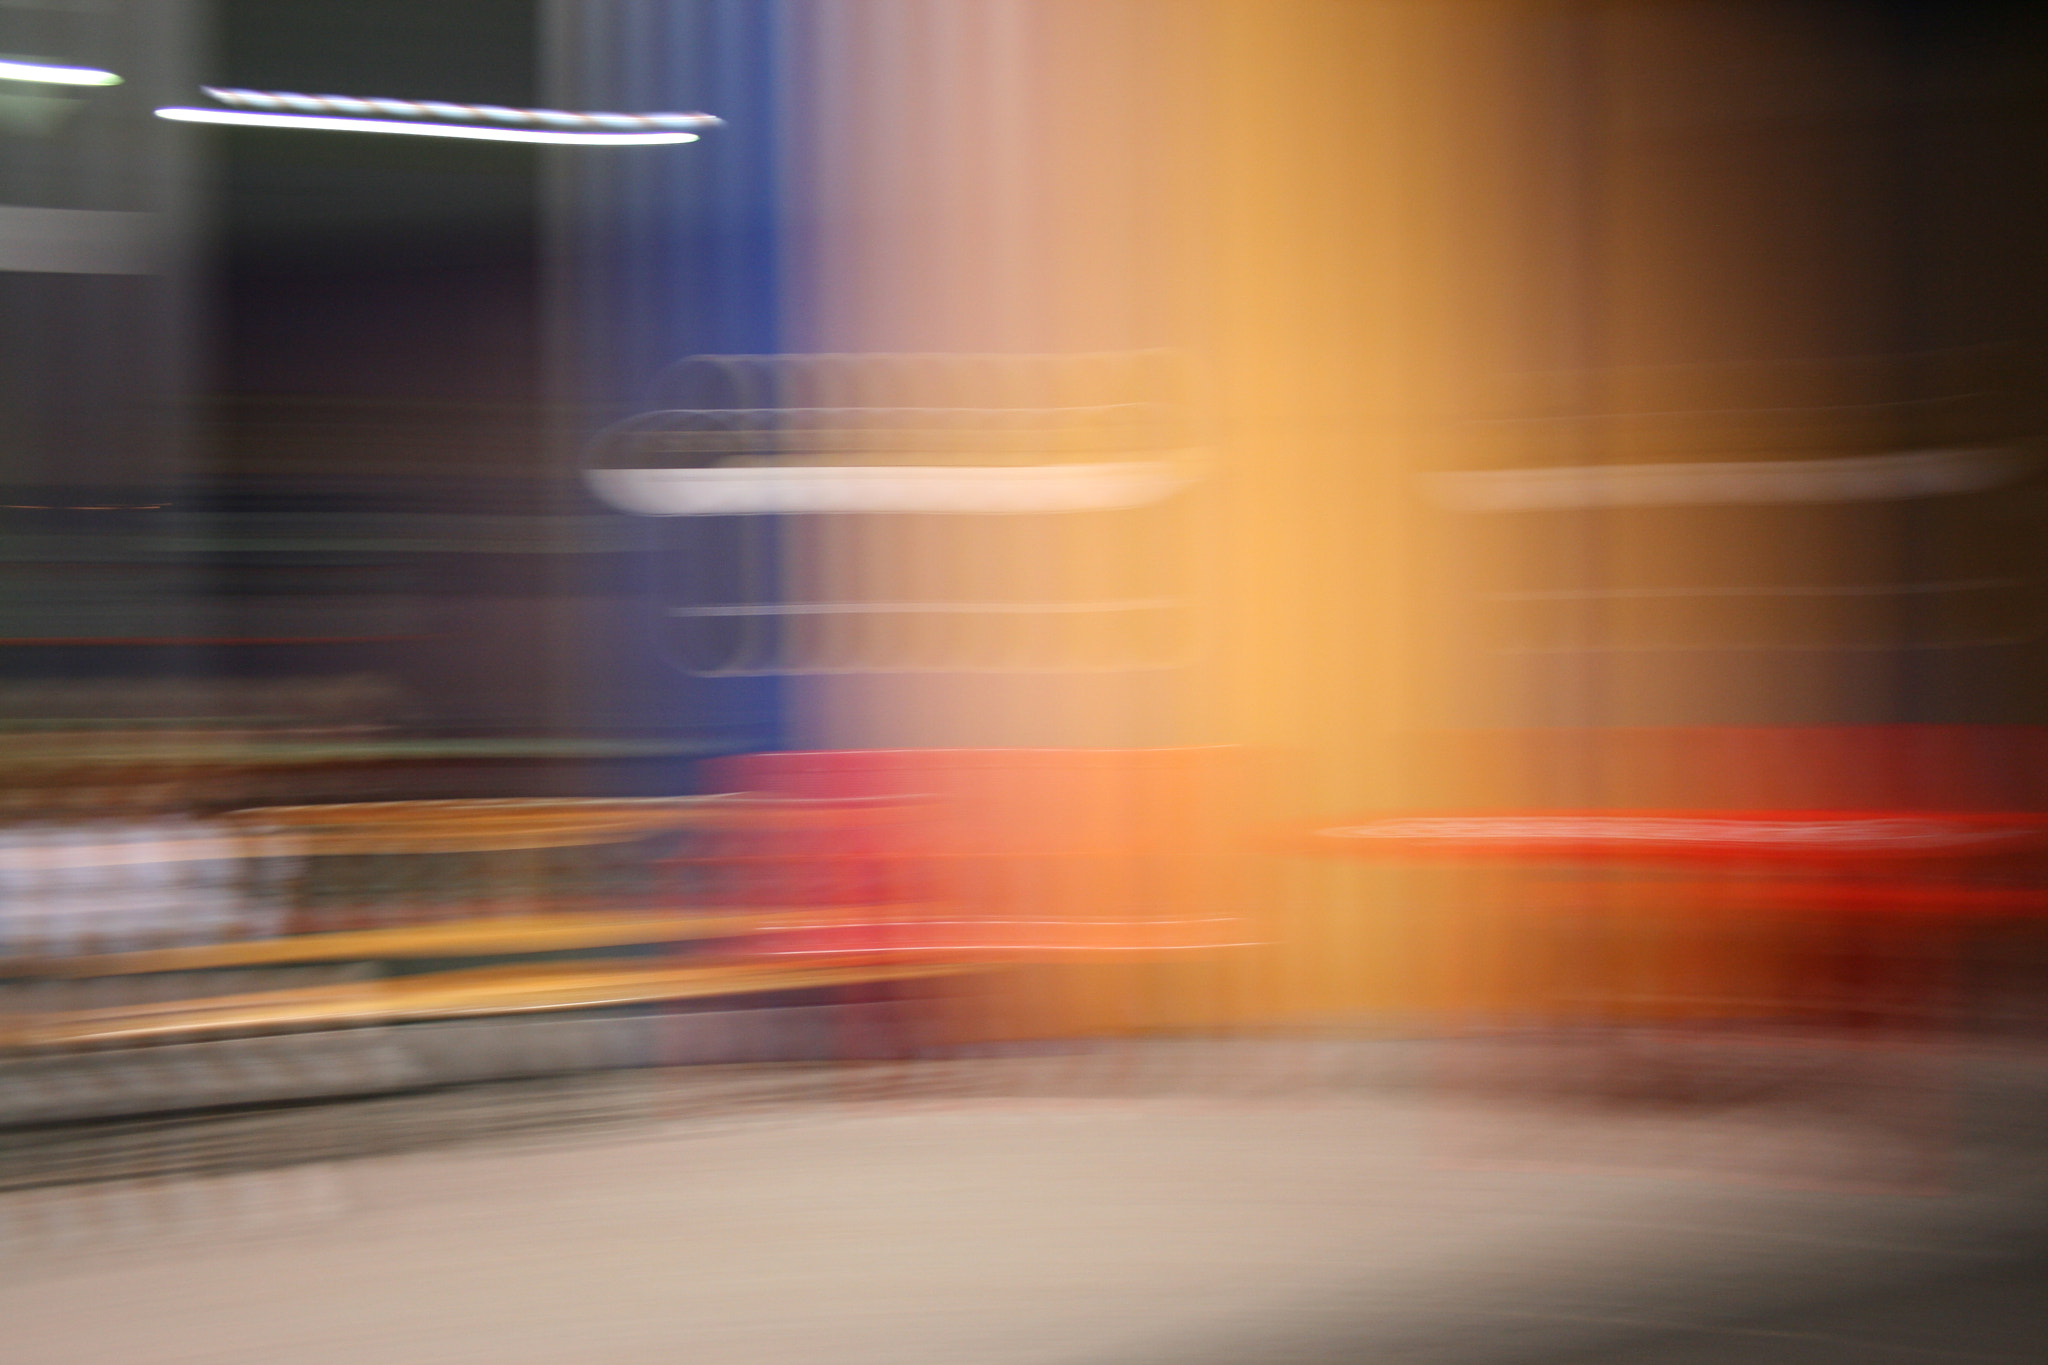 Photograph Speed Of Sound by Lucia Brancati on 500px